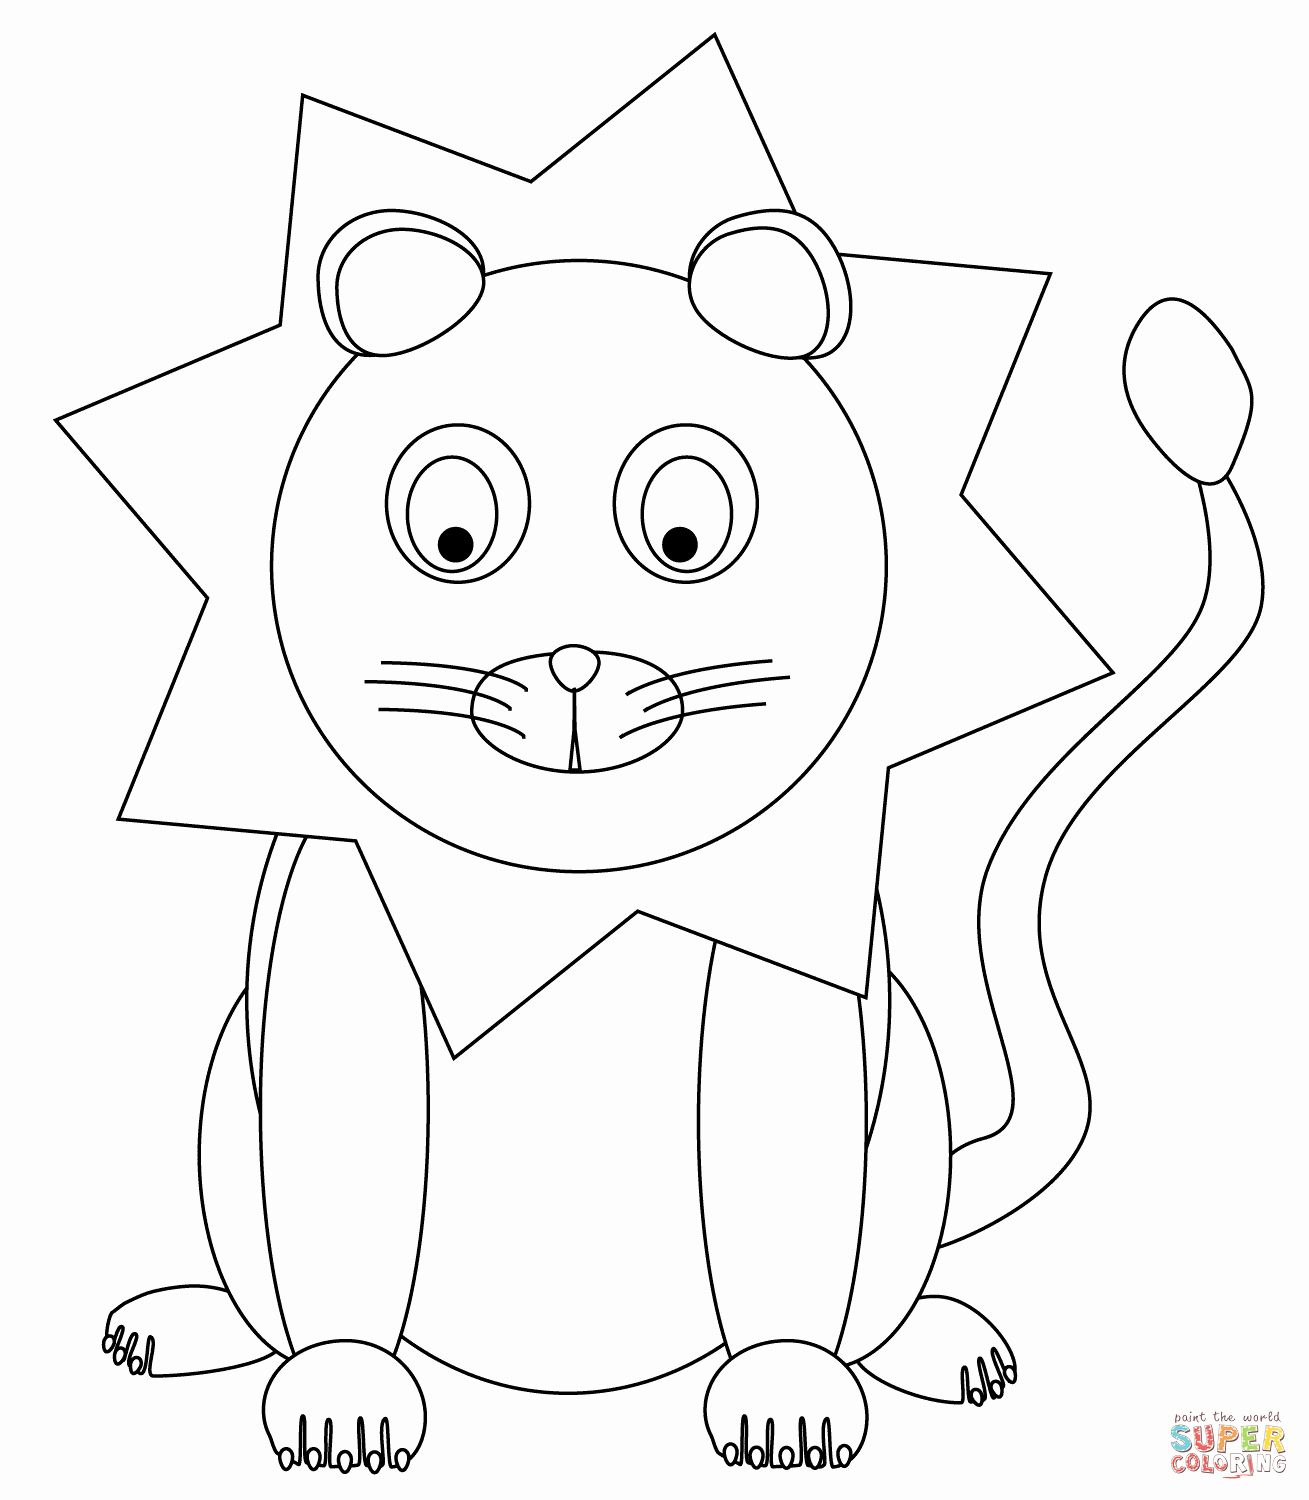 Lion Family Coloring Pages Best Of Lion And Lamb Coloring Pages Lion Coloring Pages Family Coloring Pages Free Coloring Pages